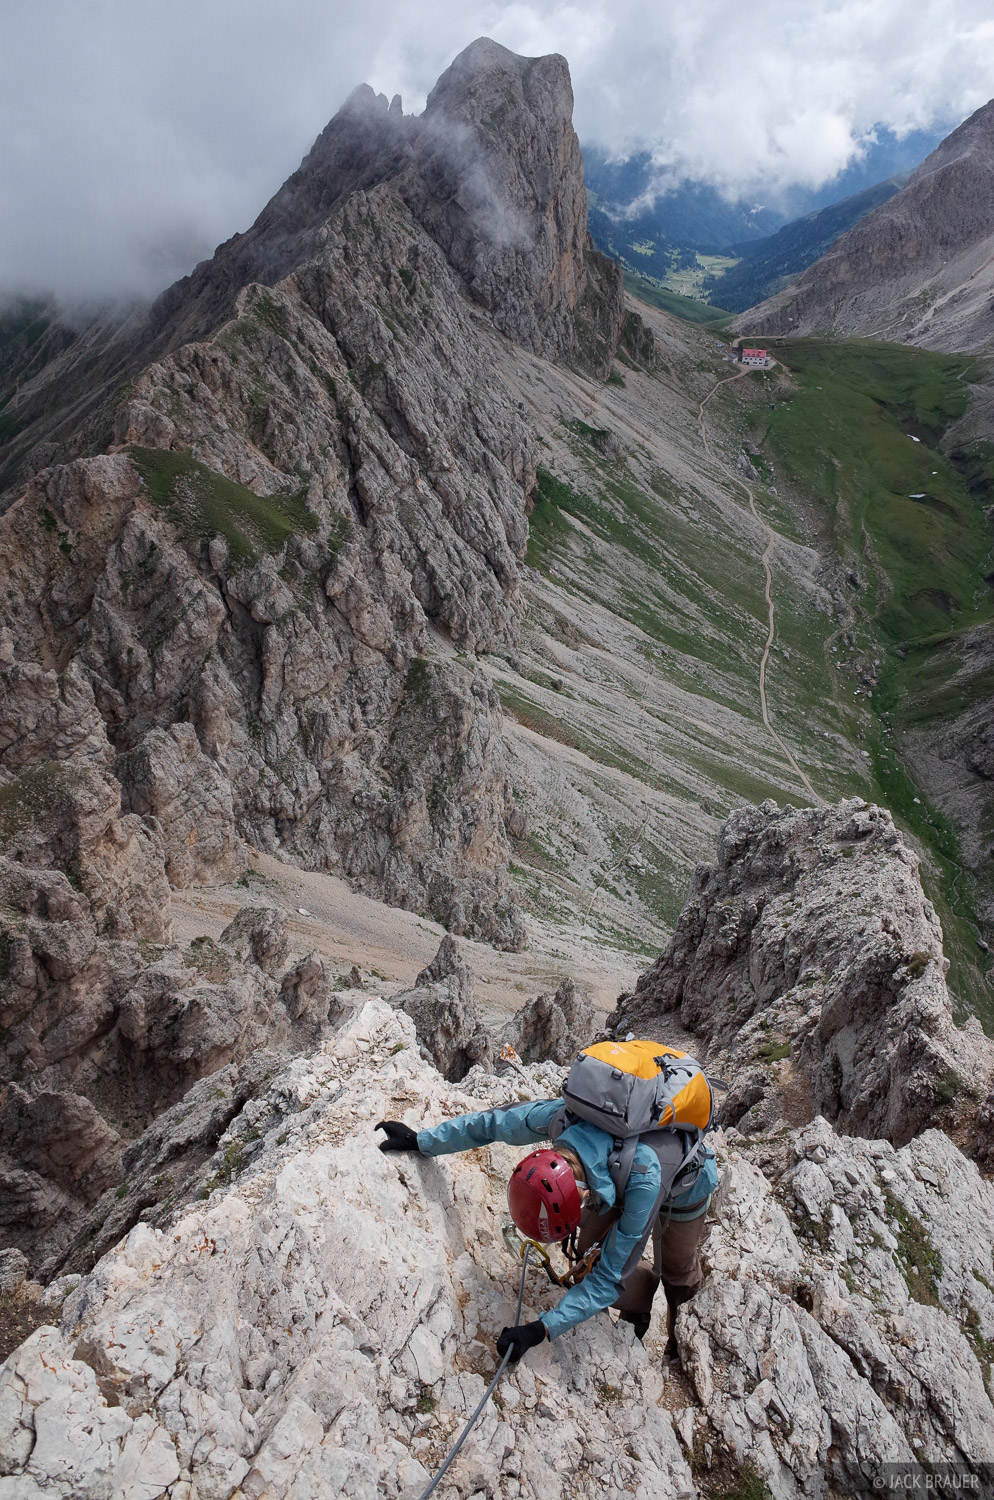 Dolomites, Italy, Rosengarten, via ferrata, Maximilian, Maximiliansteig, Alpe di Tires, photo